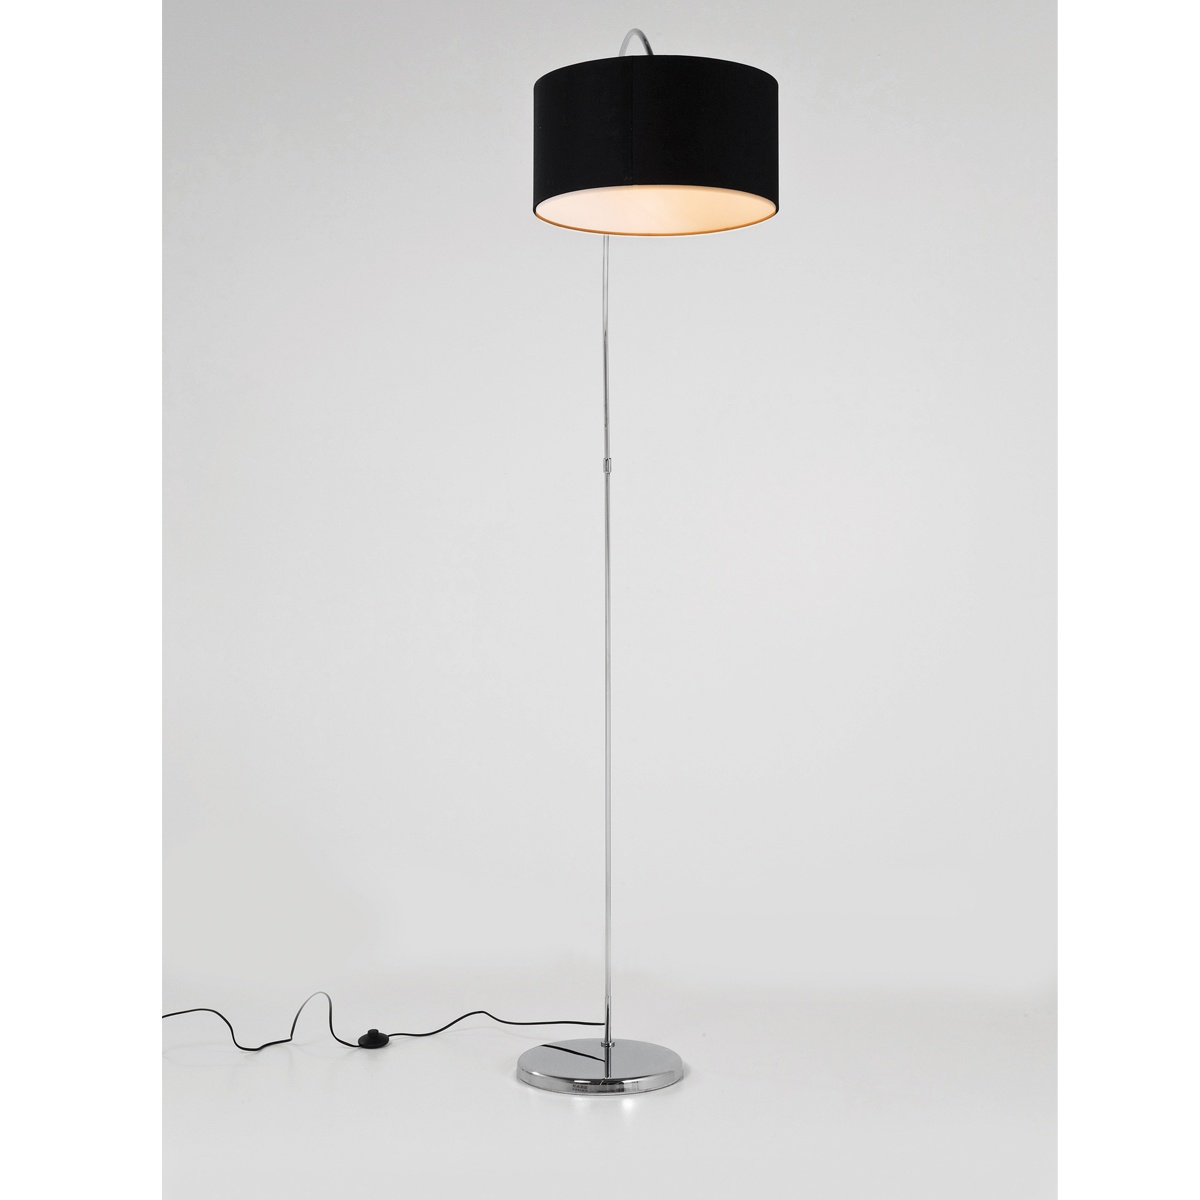 Belleville Retro Arch Black Floor Lamp French Bedroom Company